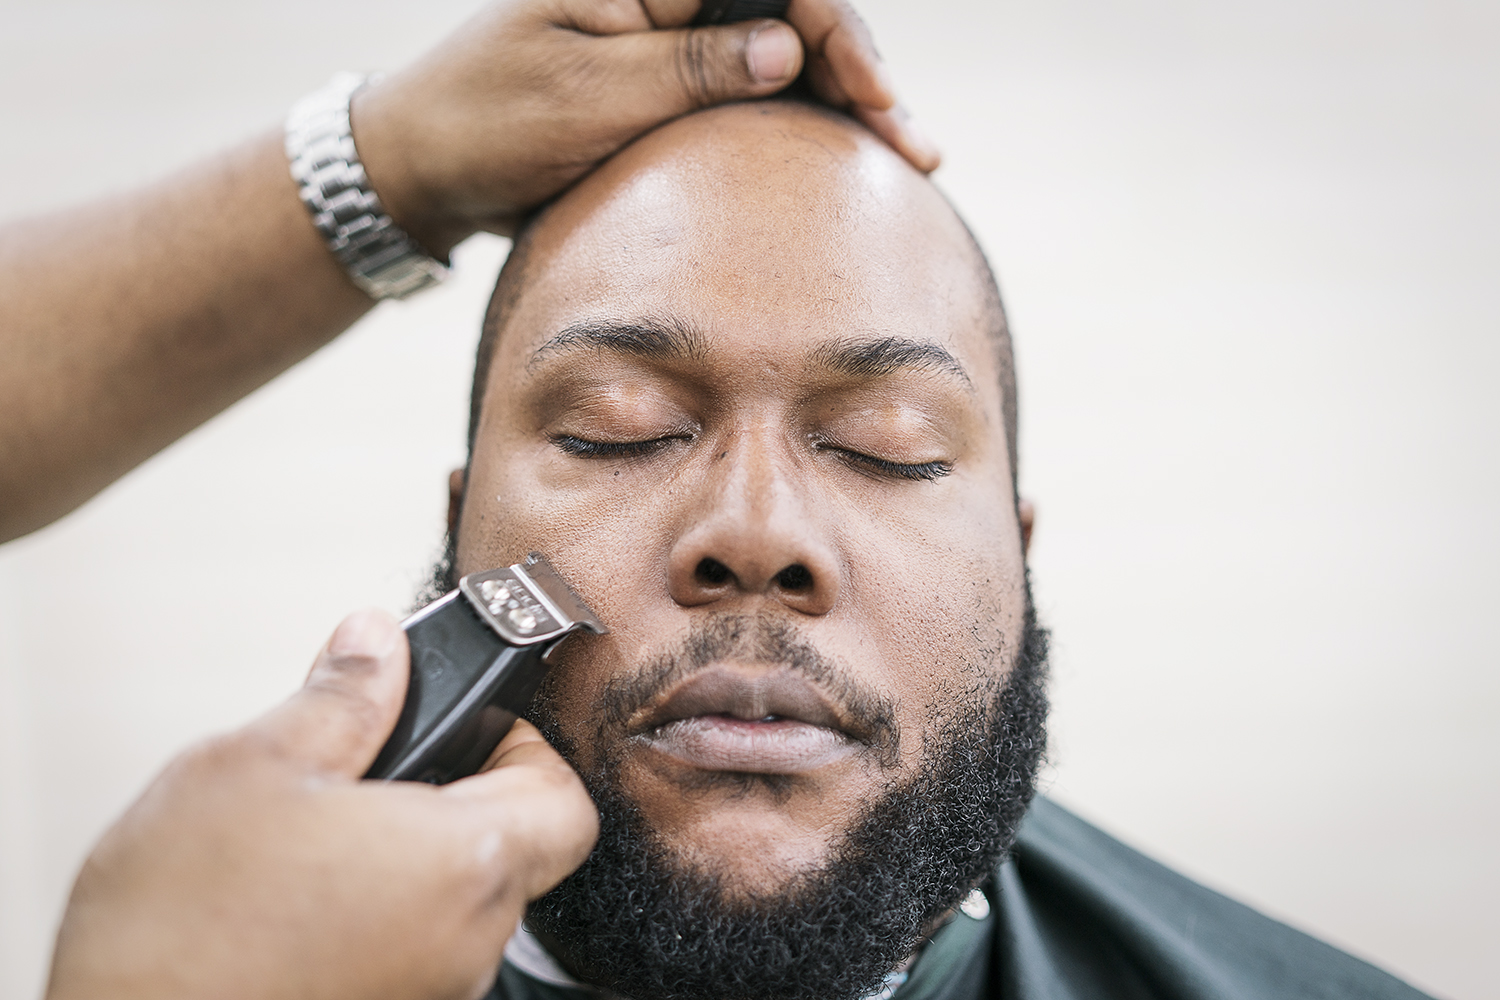 Flint, MI - Tuesday, February 6, 2018: Flint resident Brandon Ashley, 34, closes his eyes and relaxes while he receives a haircut and beard trim at the Flint Institute of Barbering.Tim Galloway for FlintSide